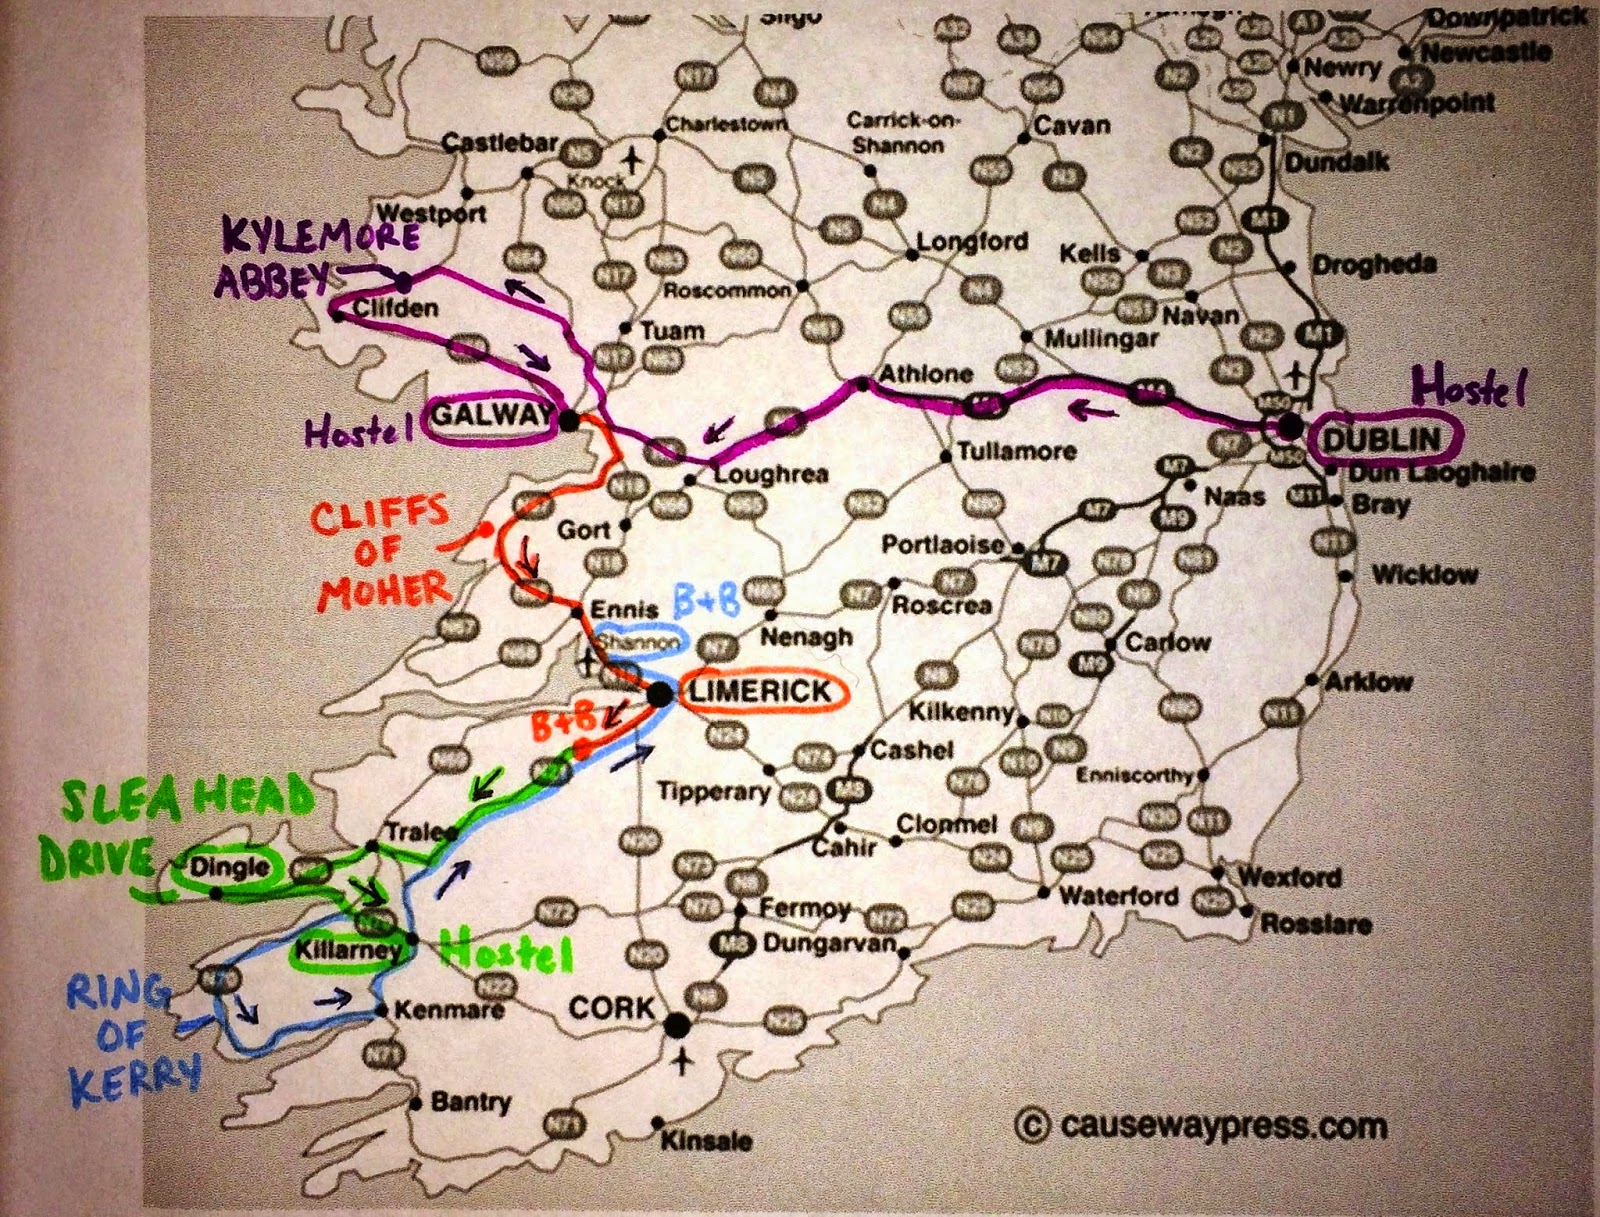 and creating a route that will be best for us making sure to hit all the major landmarks and scenic drives the map below shows our planned route